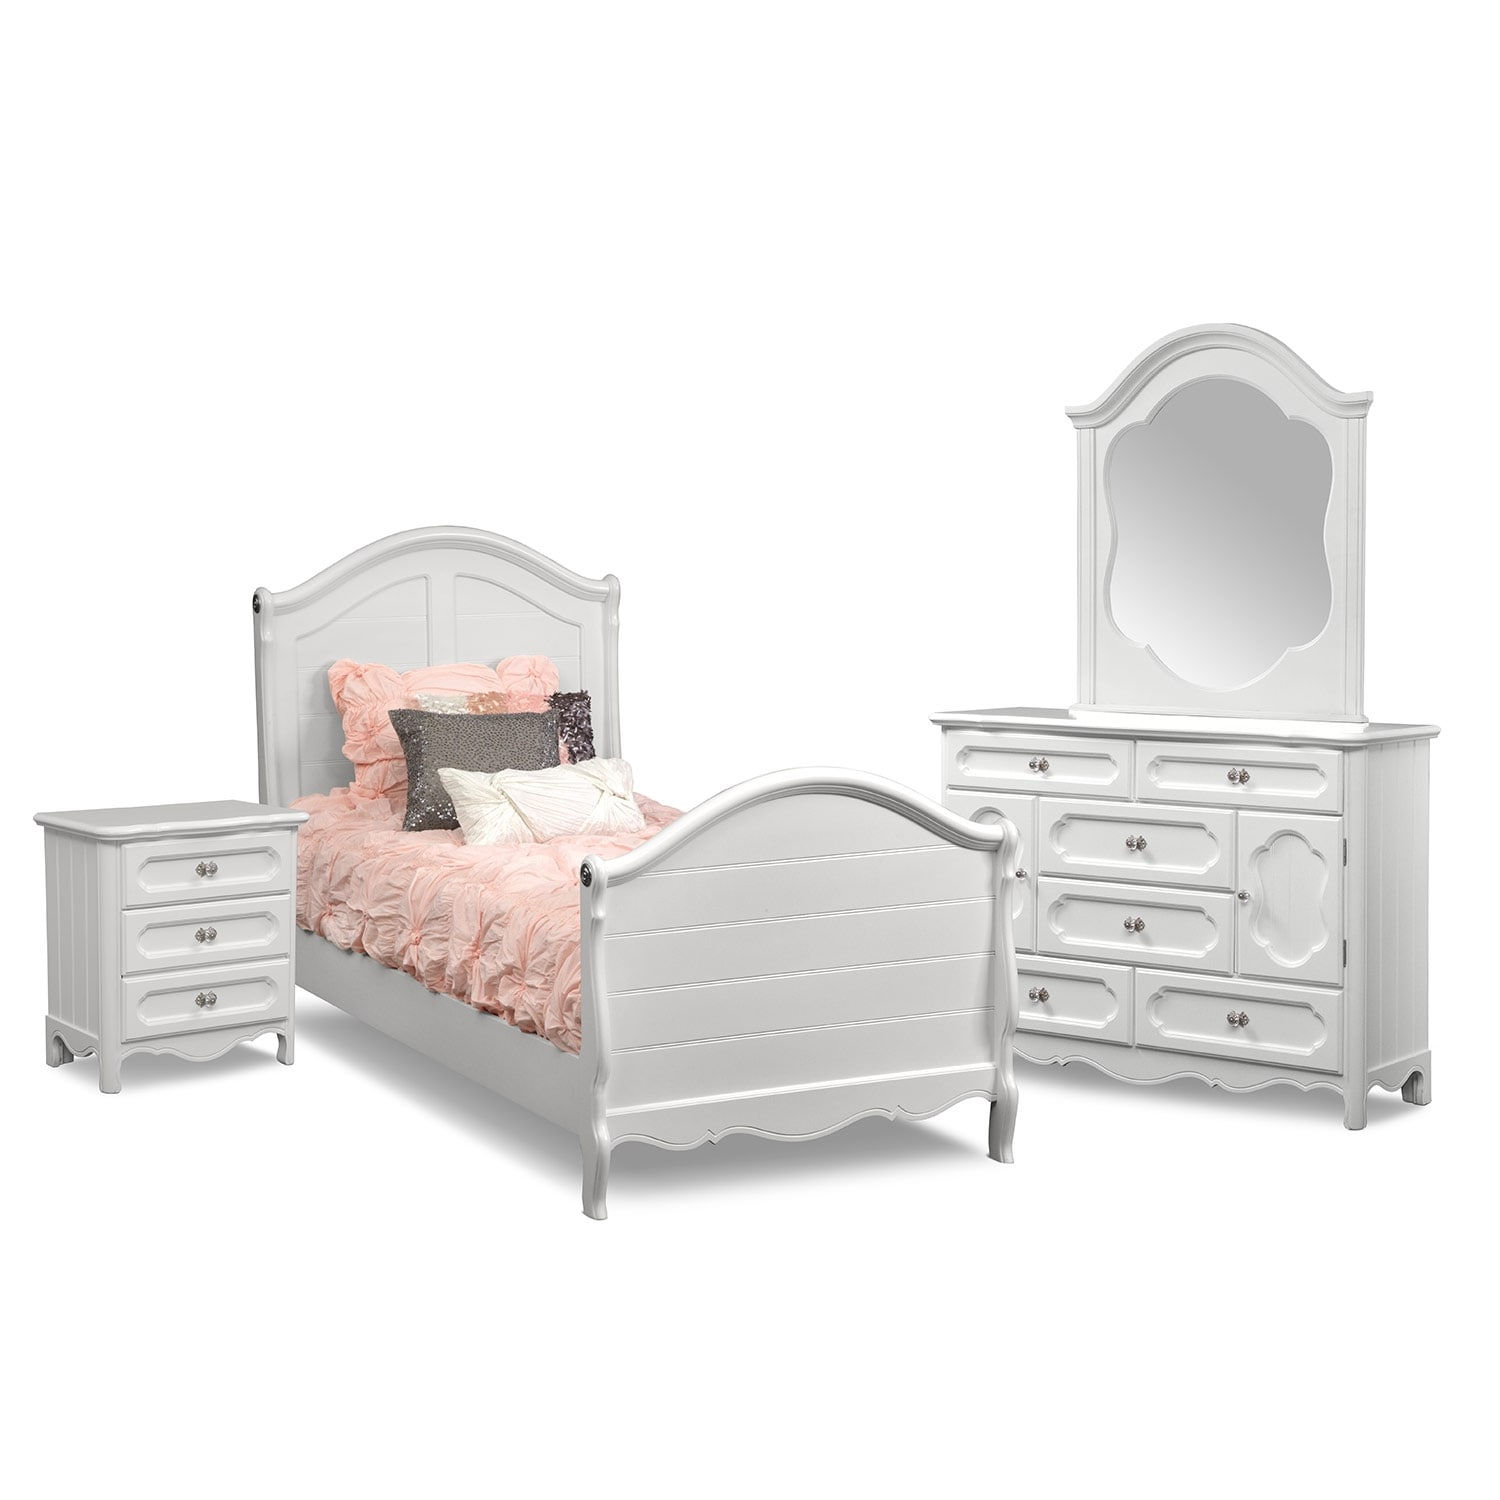 Carly 6-Piece Bedroom Set with Nightstand, Dresser and Mirror ...